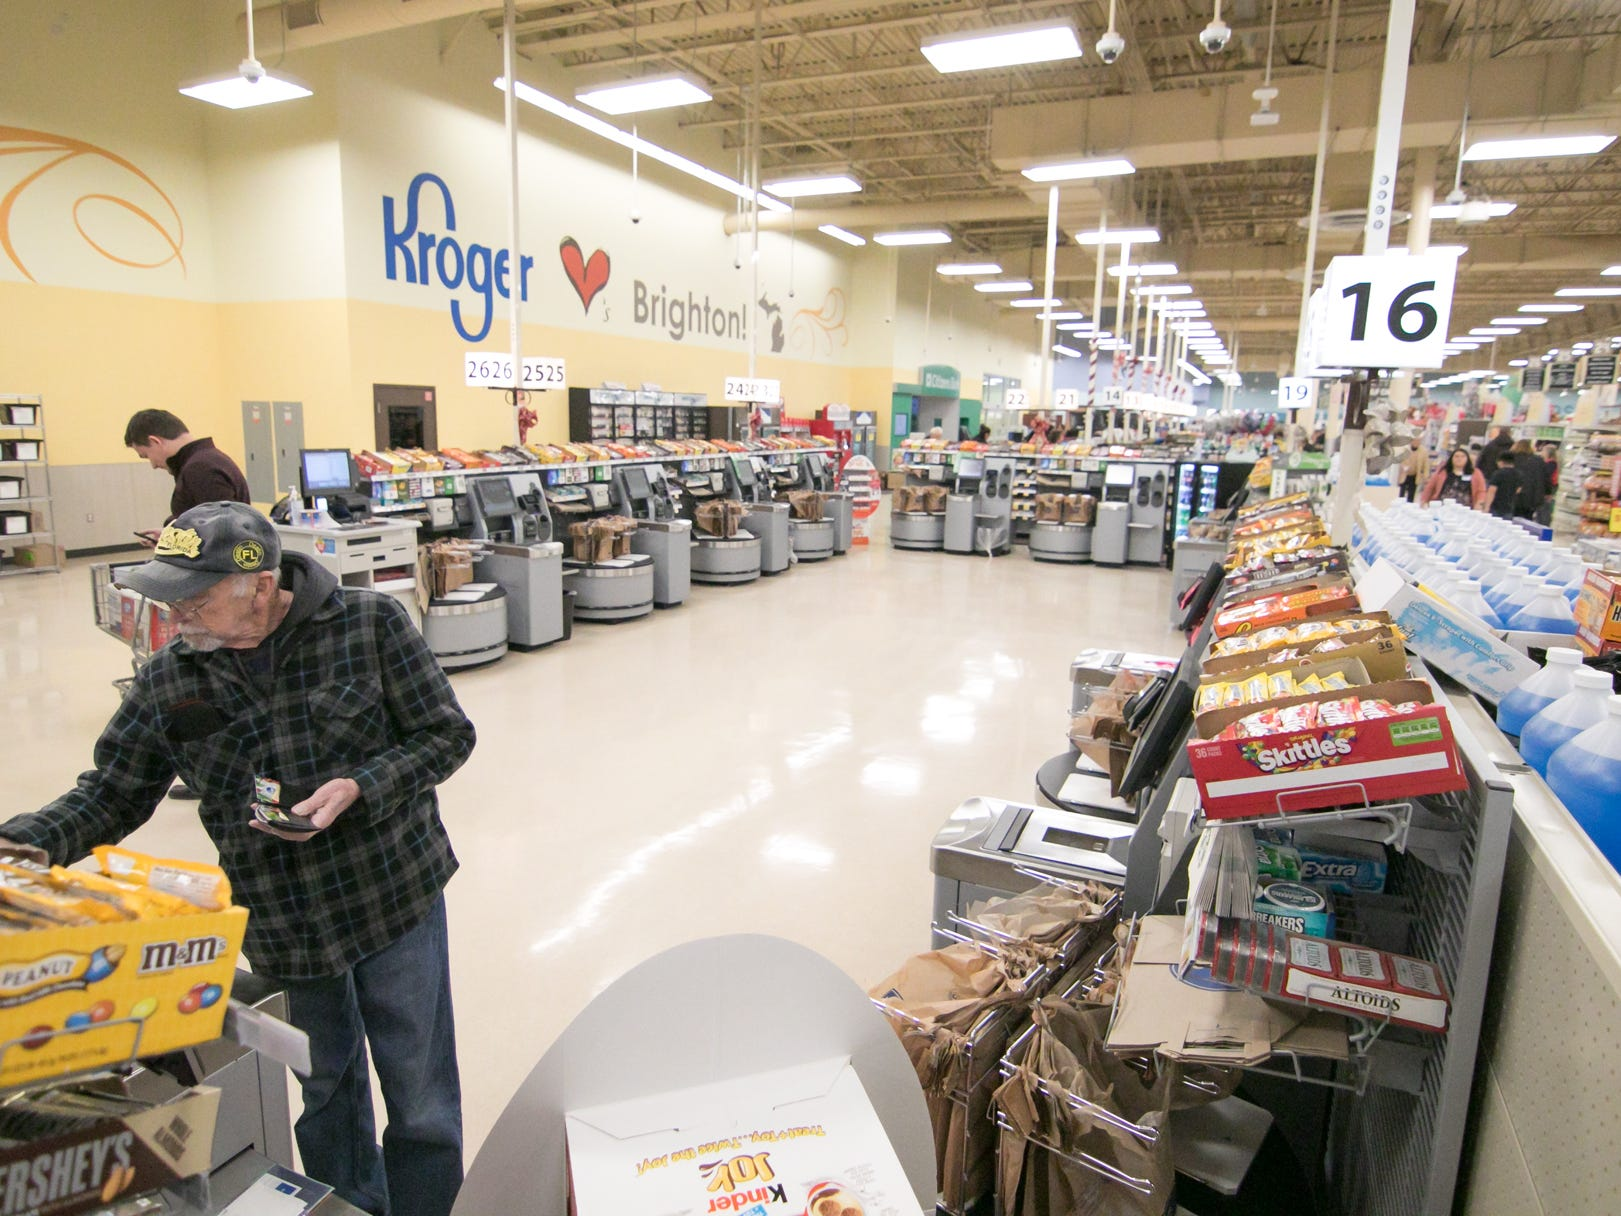 An expanded self-checkout area is among the improvements found at the Brighton Kroger store, Wednesday, Dec. 5, 2018.